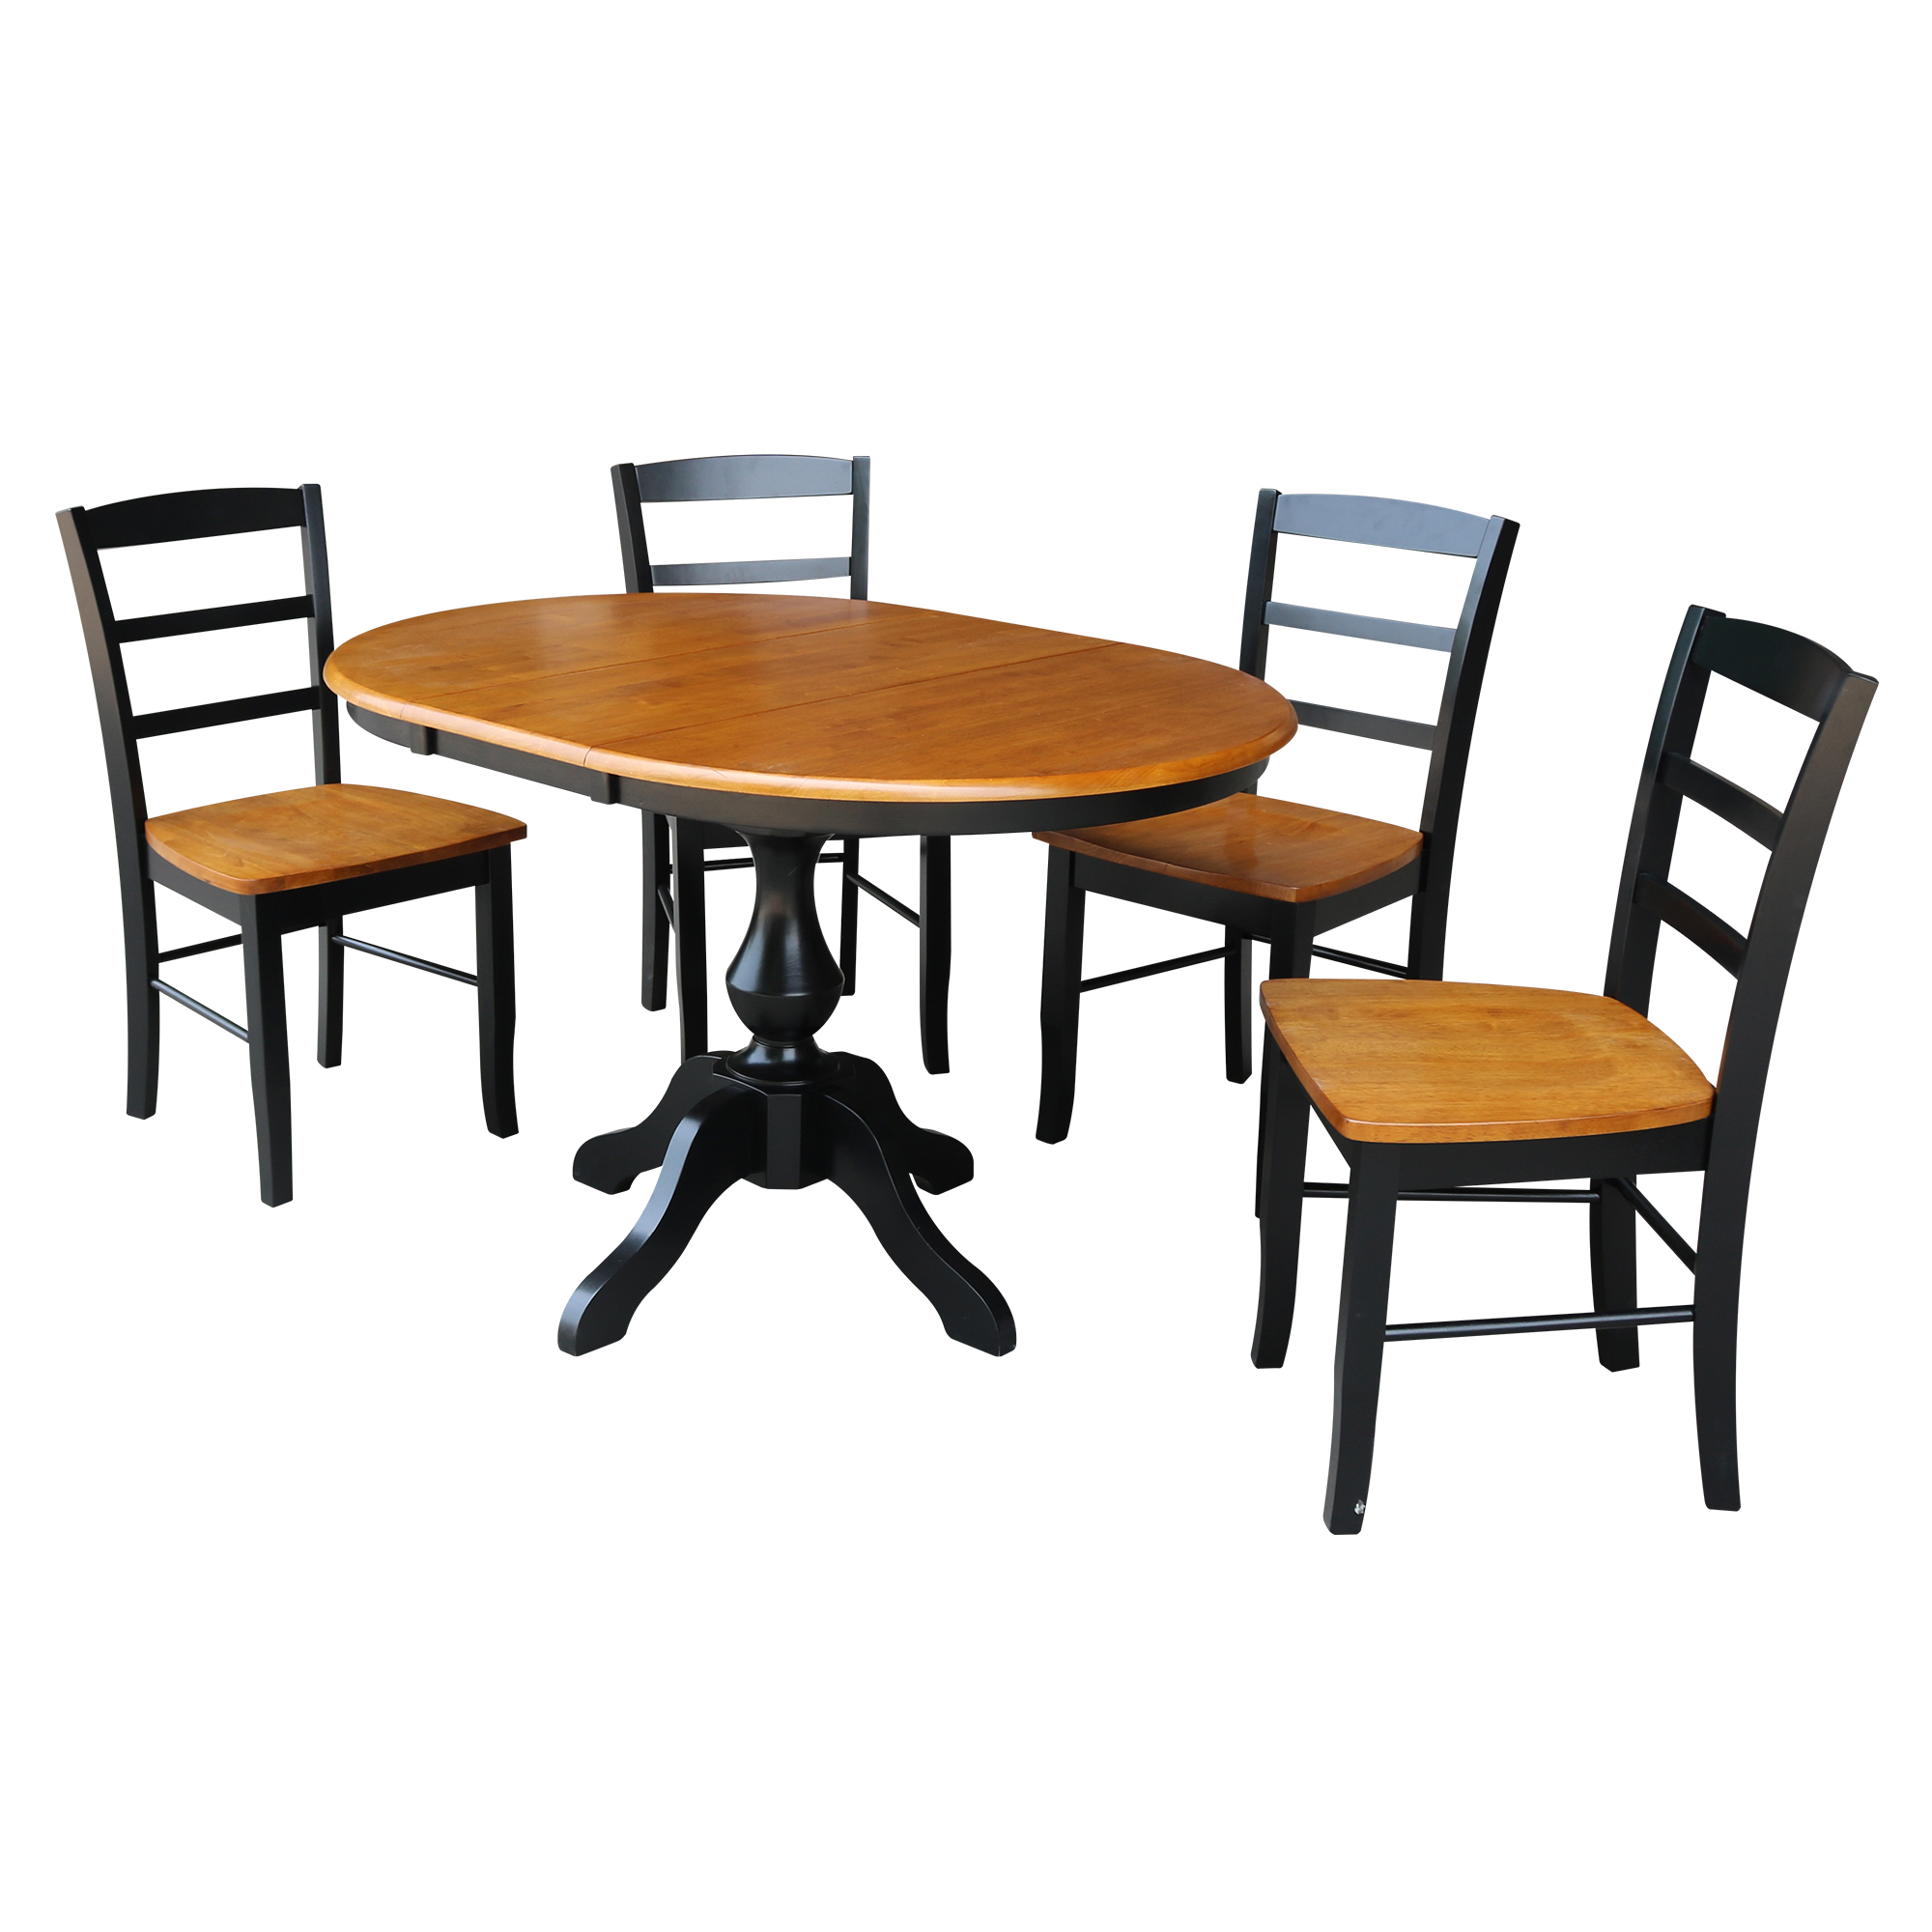 "36"" Round Dining Table with 12"" Leaf and 4 Madrid Chairs - Black/Cherry - 5 Piece Set"